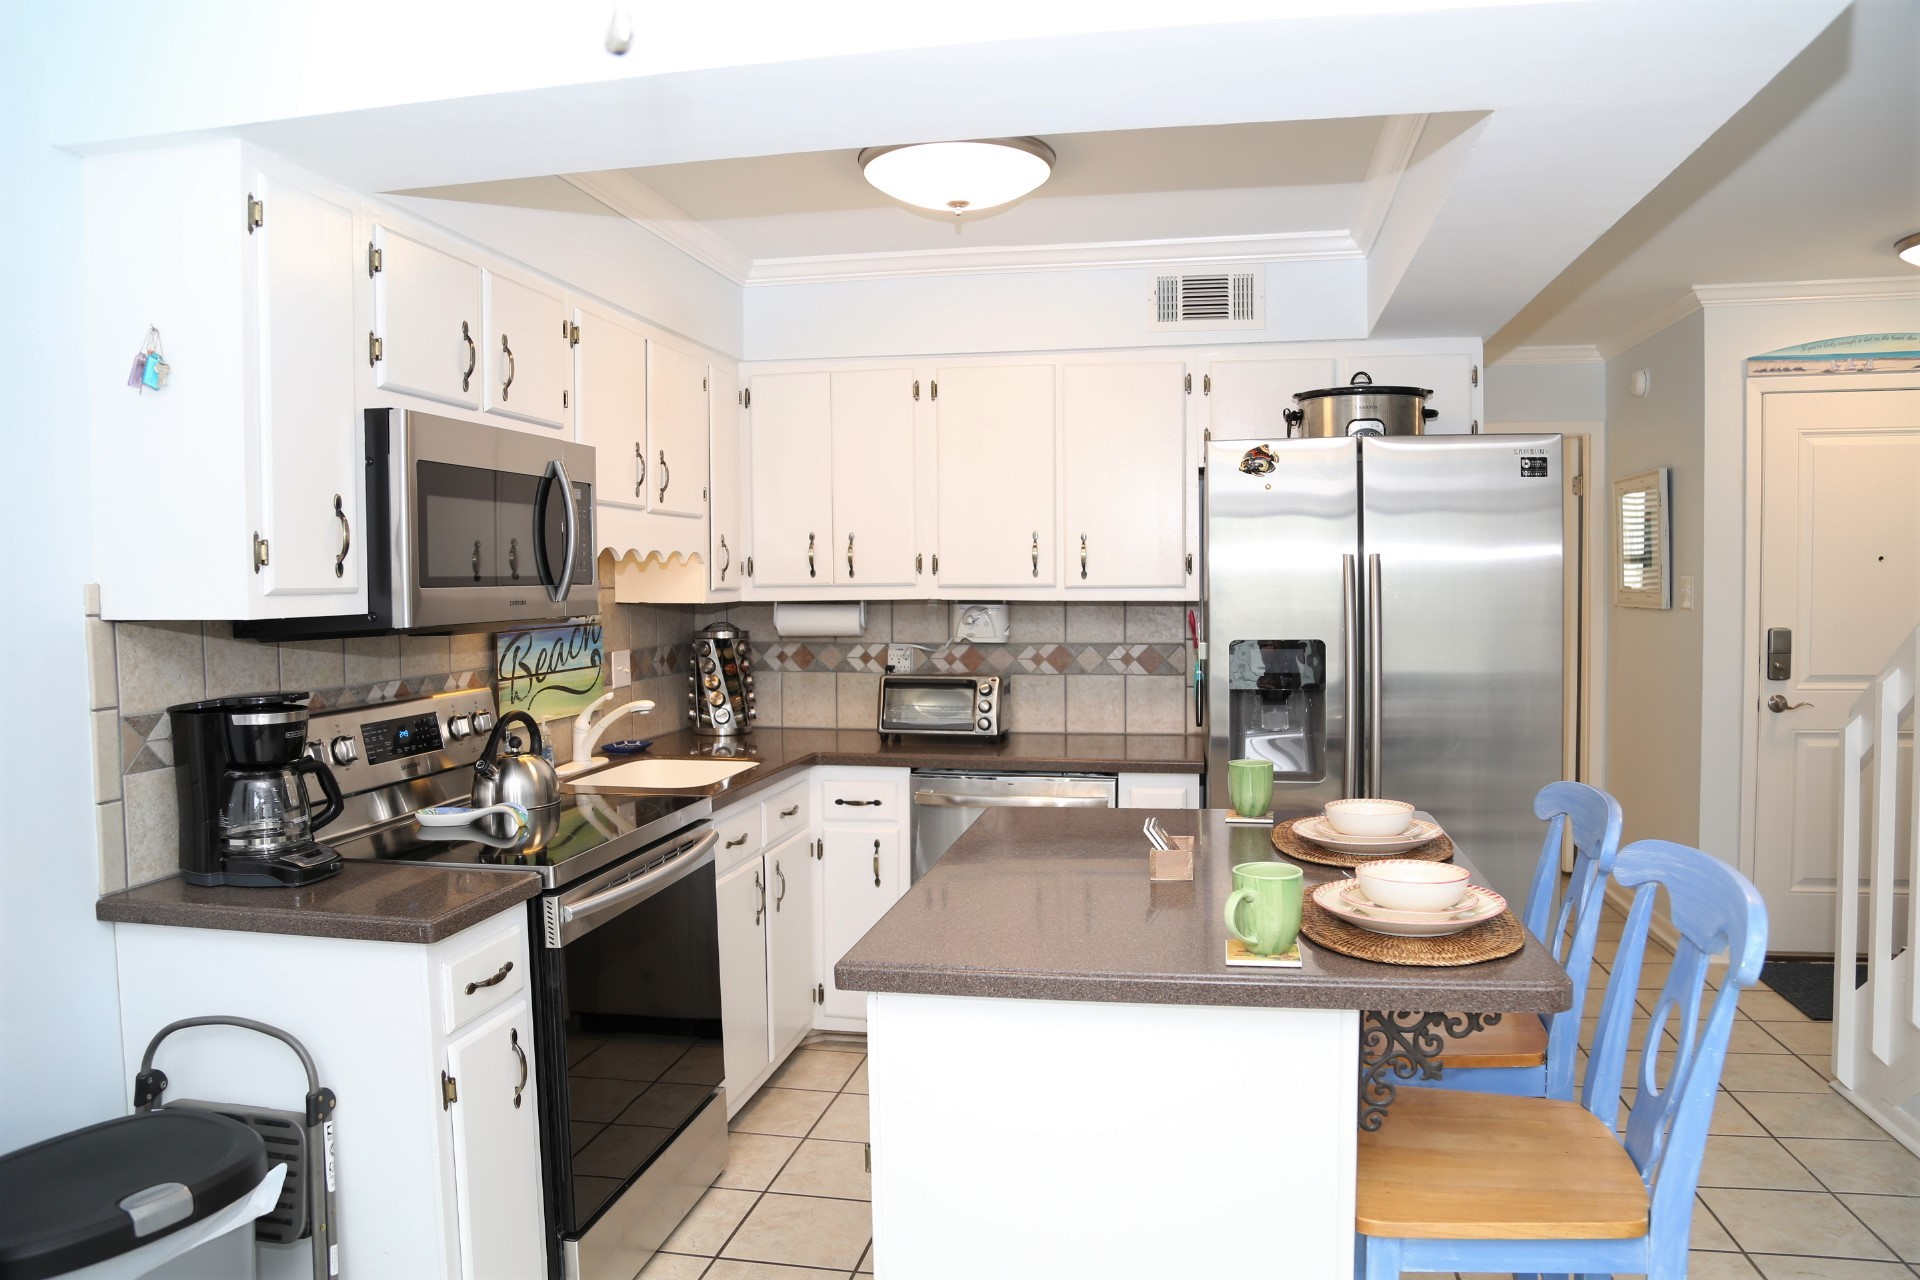 Fully equipped kitchen with updated appliances.